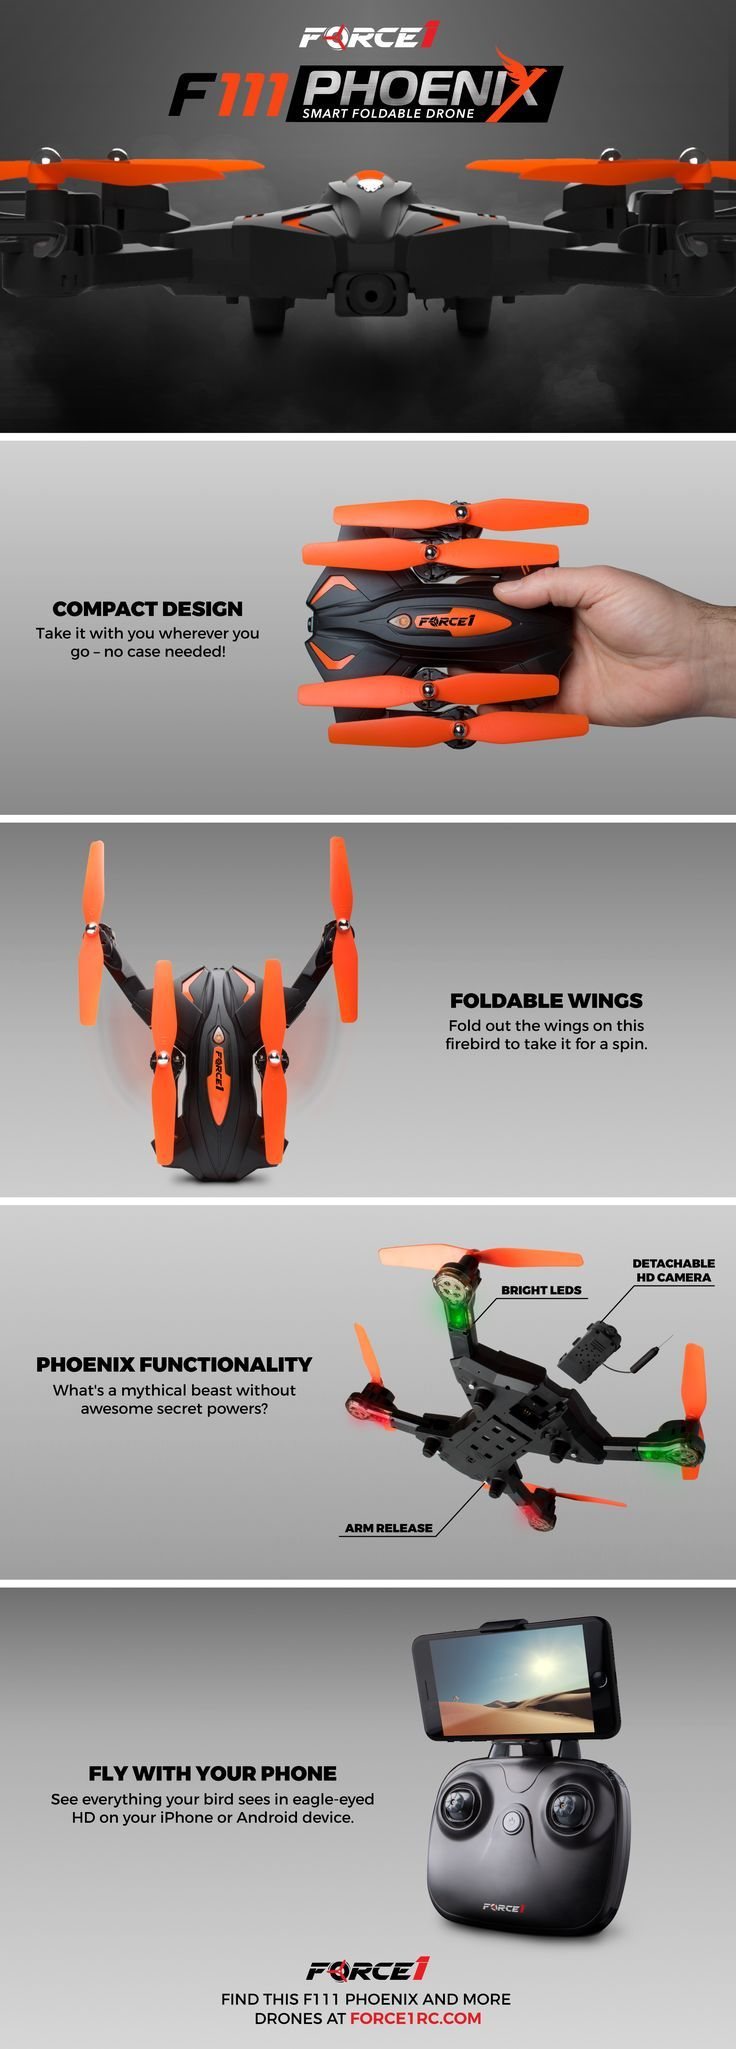 Check out the F111 Phoenix drone - a foldable FPV drone that you can take anywhere! Available at Force1RC.com. One of the best drones for beginners!